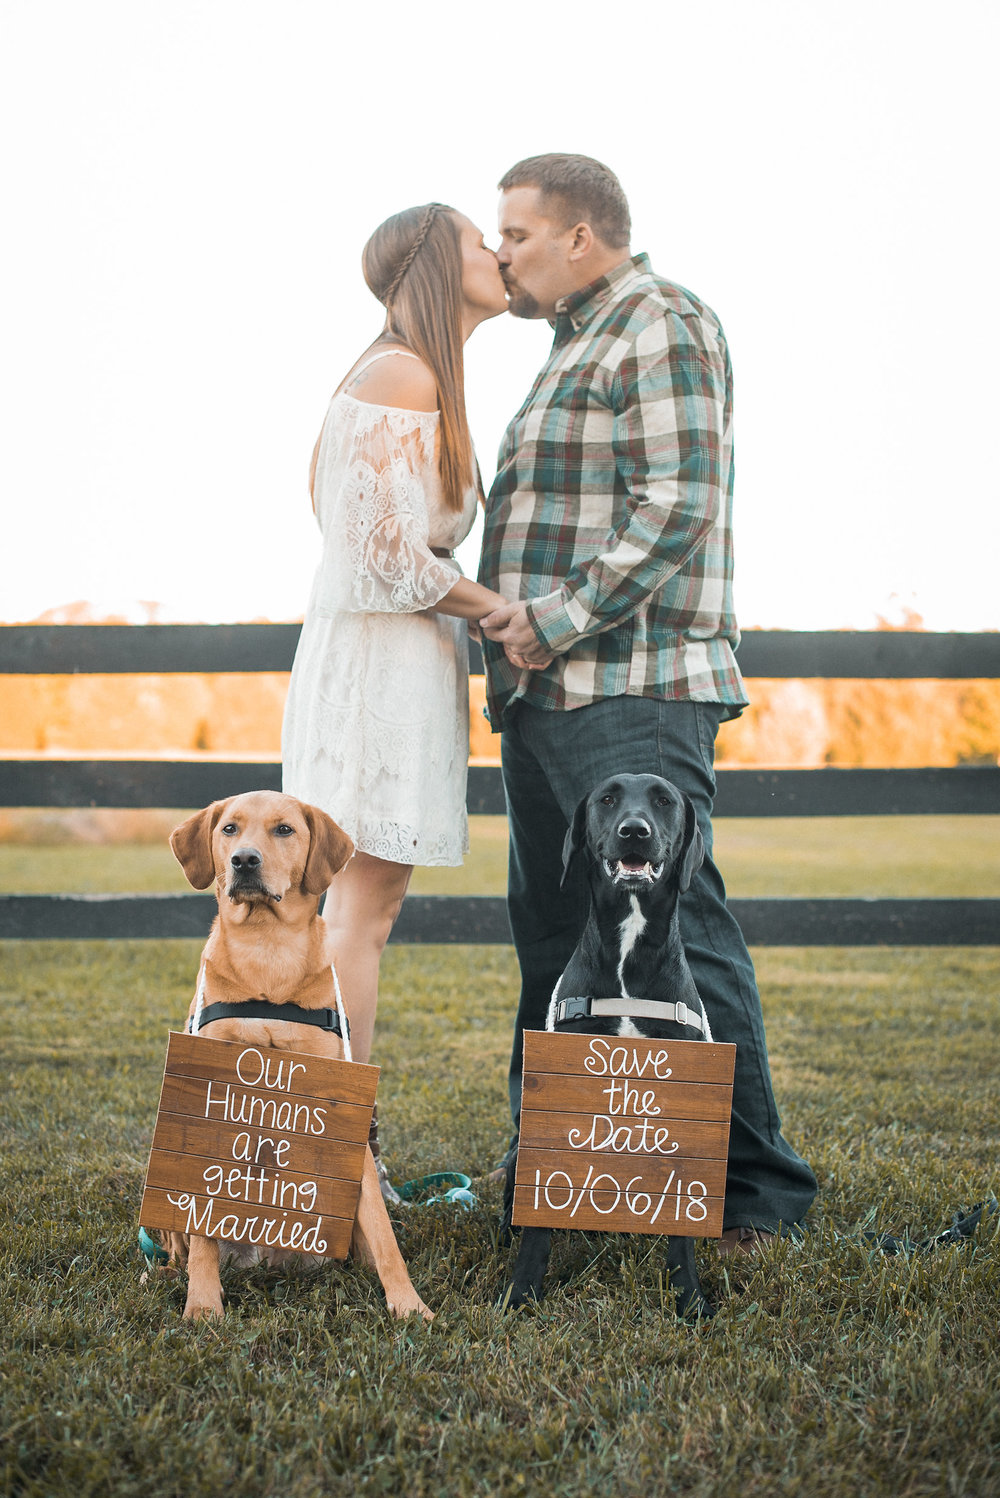 Dogs with wedding signs